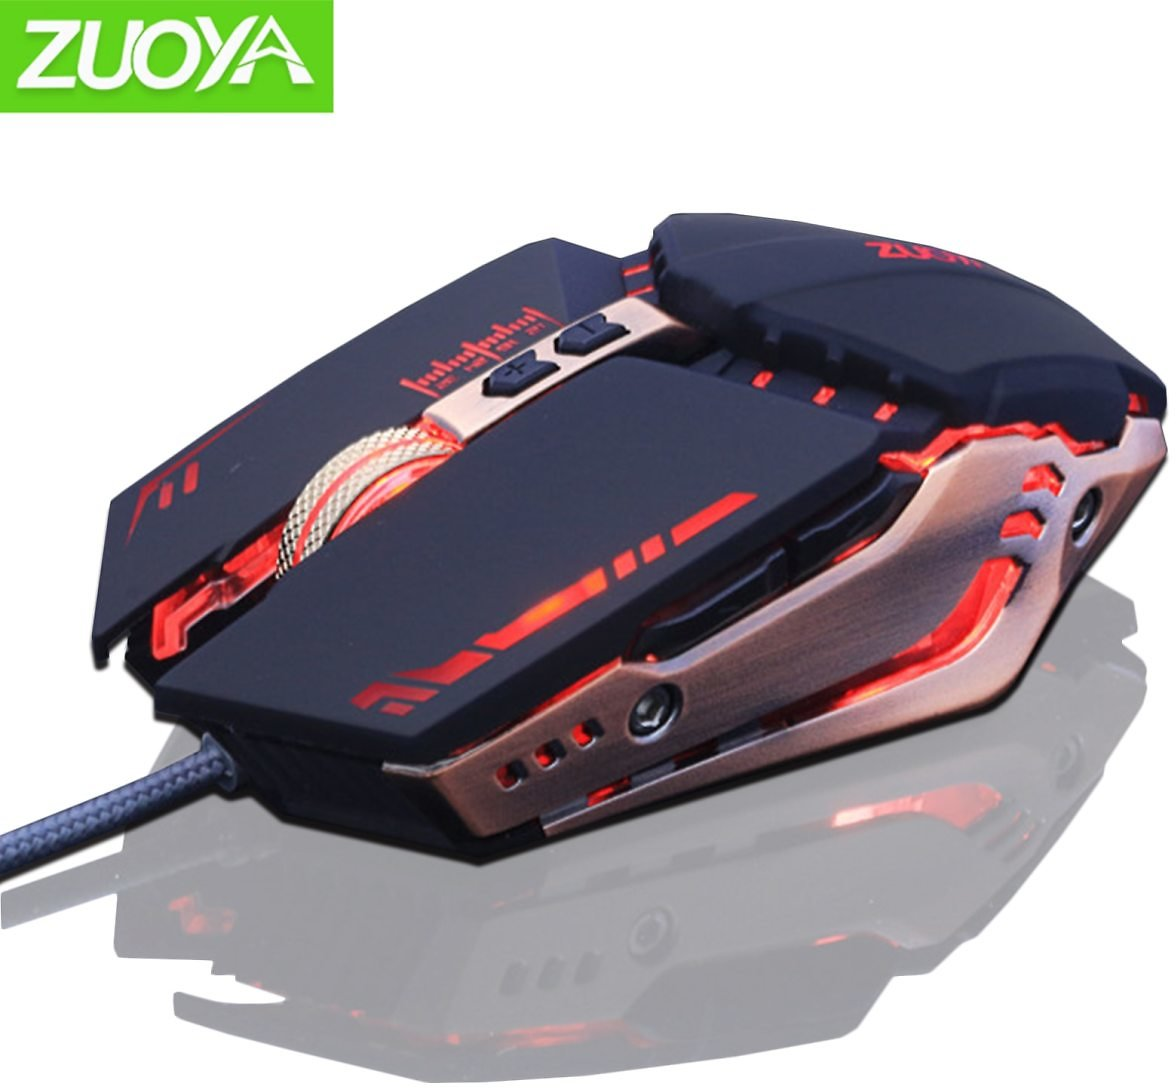 US $8.35 69% OFF|ZUOYA USB Wired Gaming Mouse 7 Buttons Optical LED Computer Game Mice for PC Laptop Notebook Gamer|Mice| - AliExpress